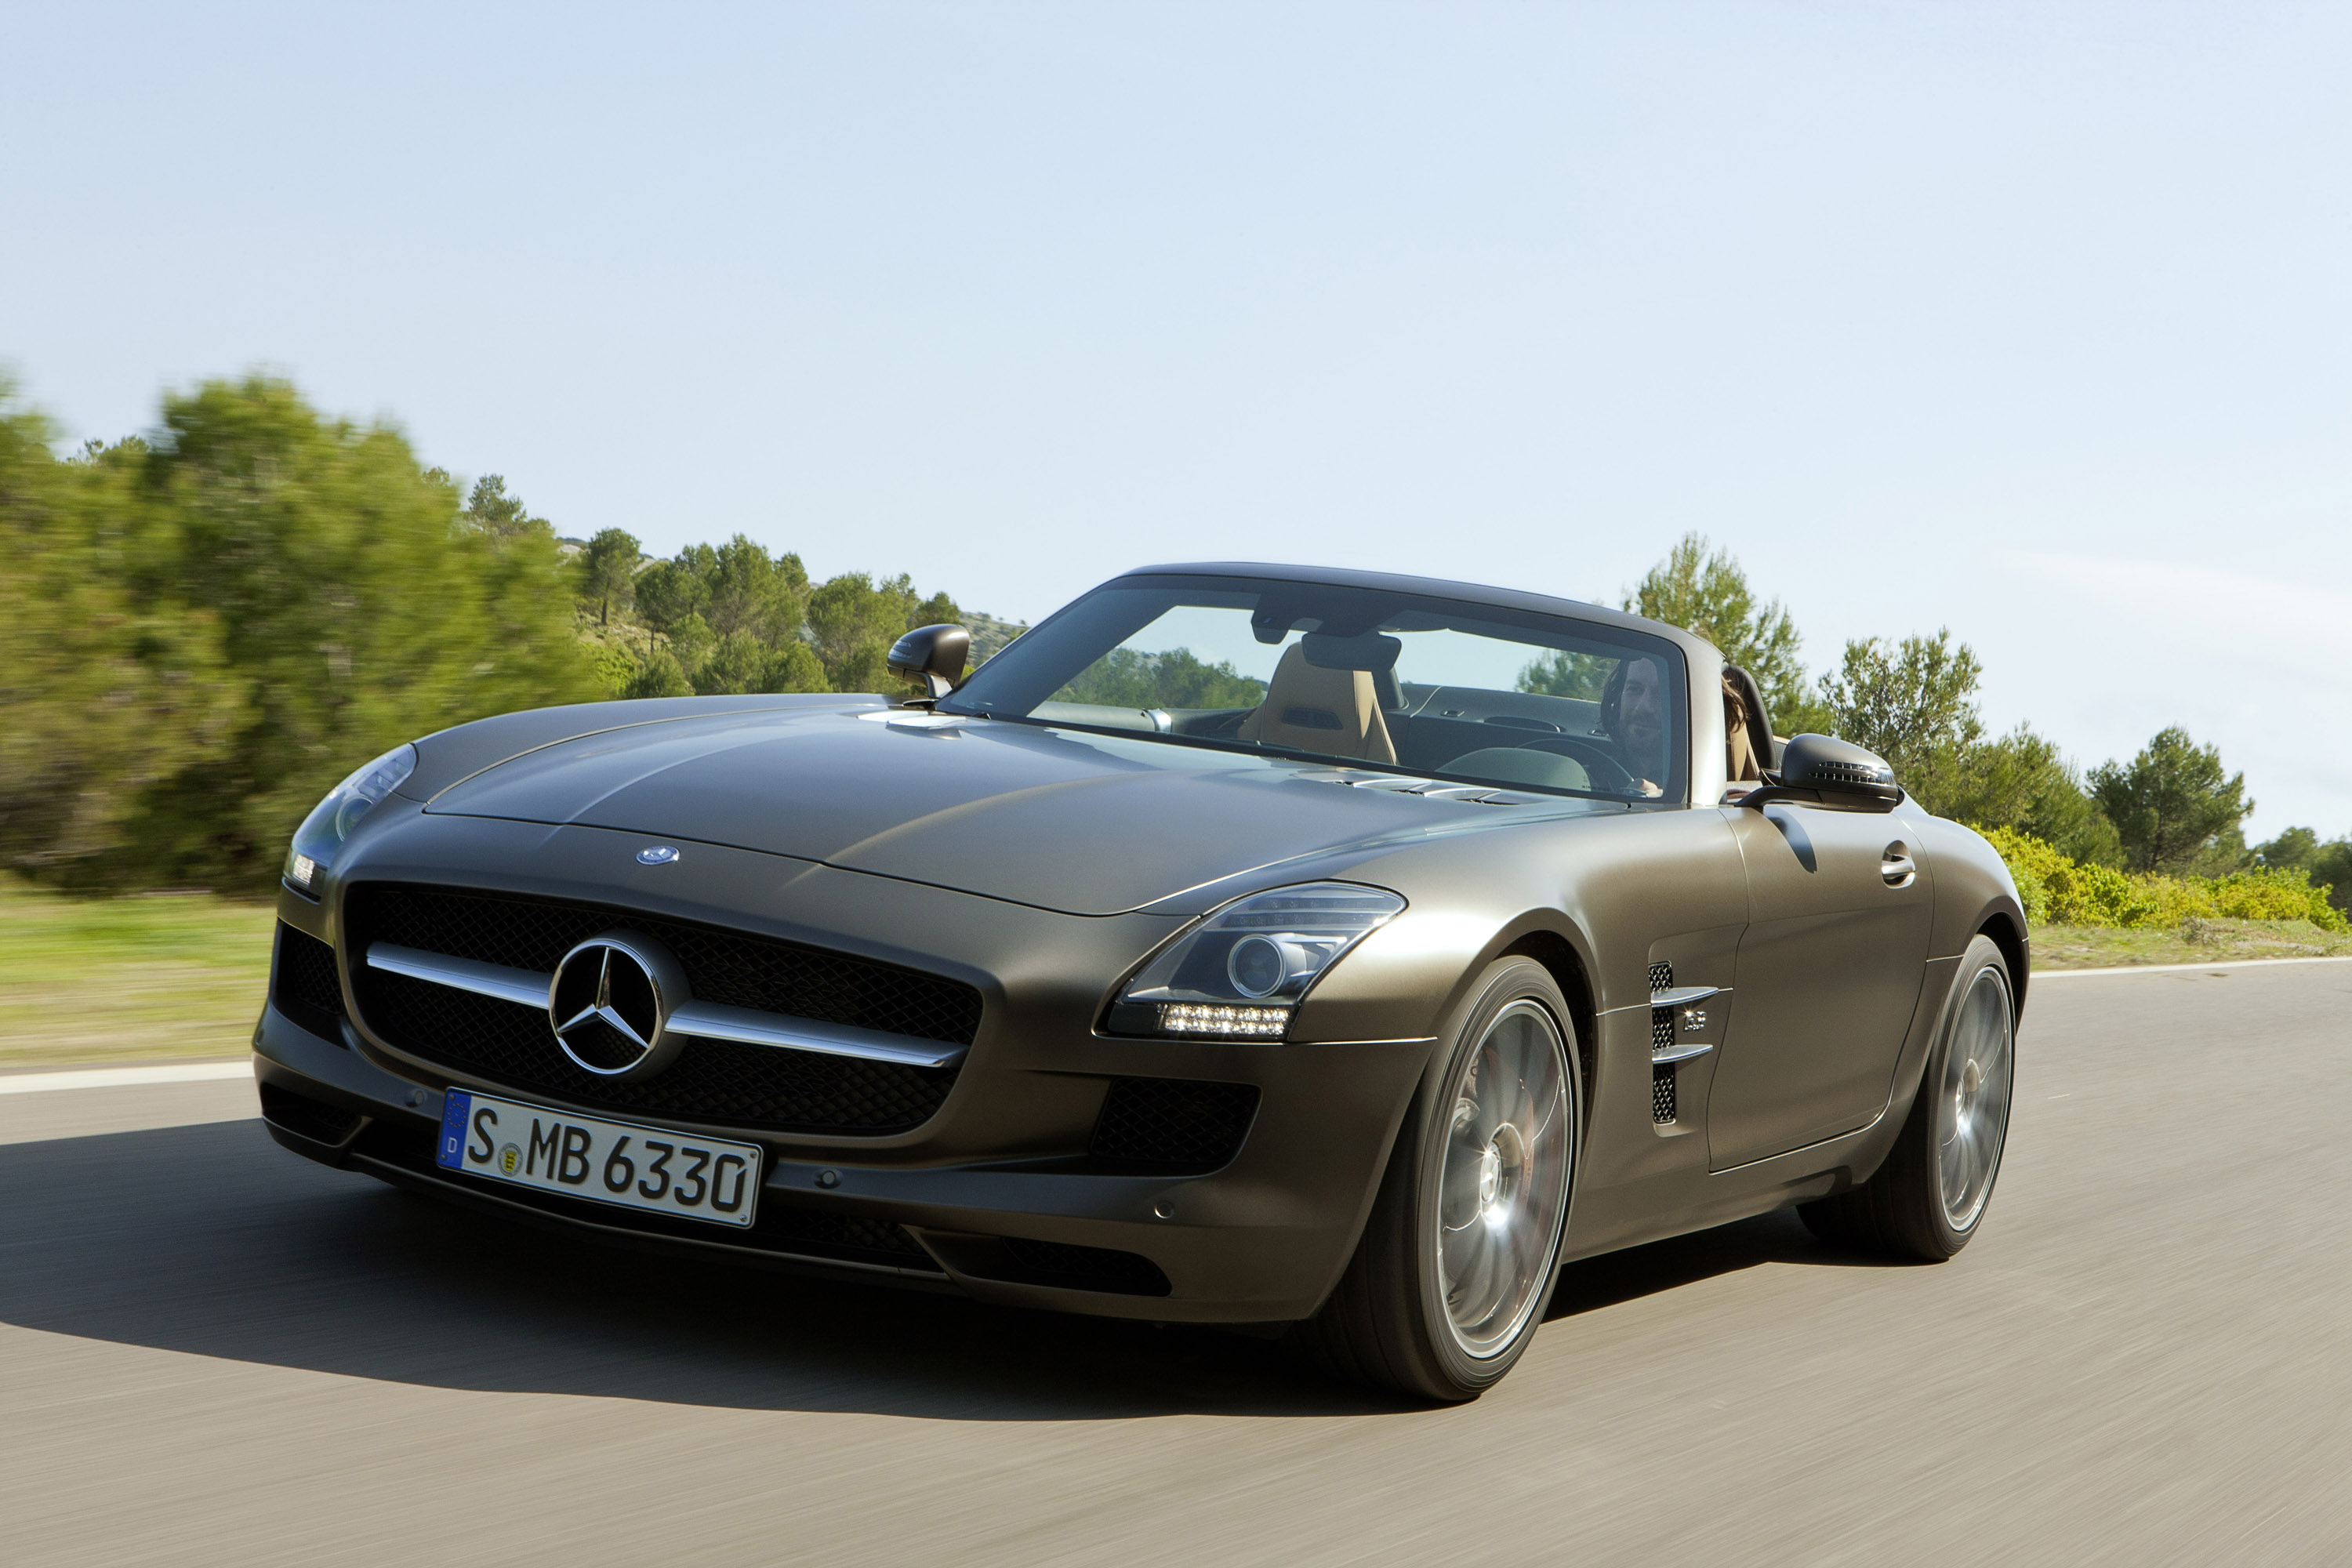 2012 mercedes sls amg roadster. Black Bedroom Furniture Sets. Home Design Ideas